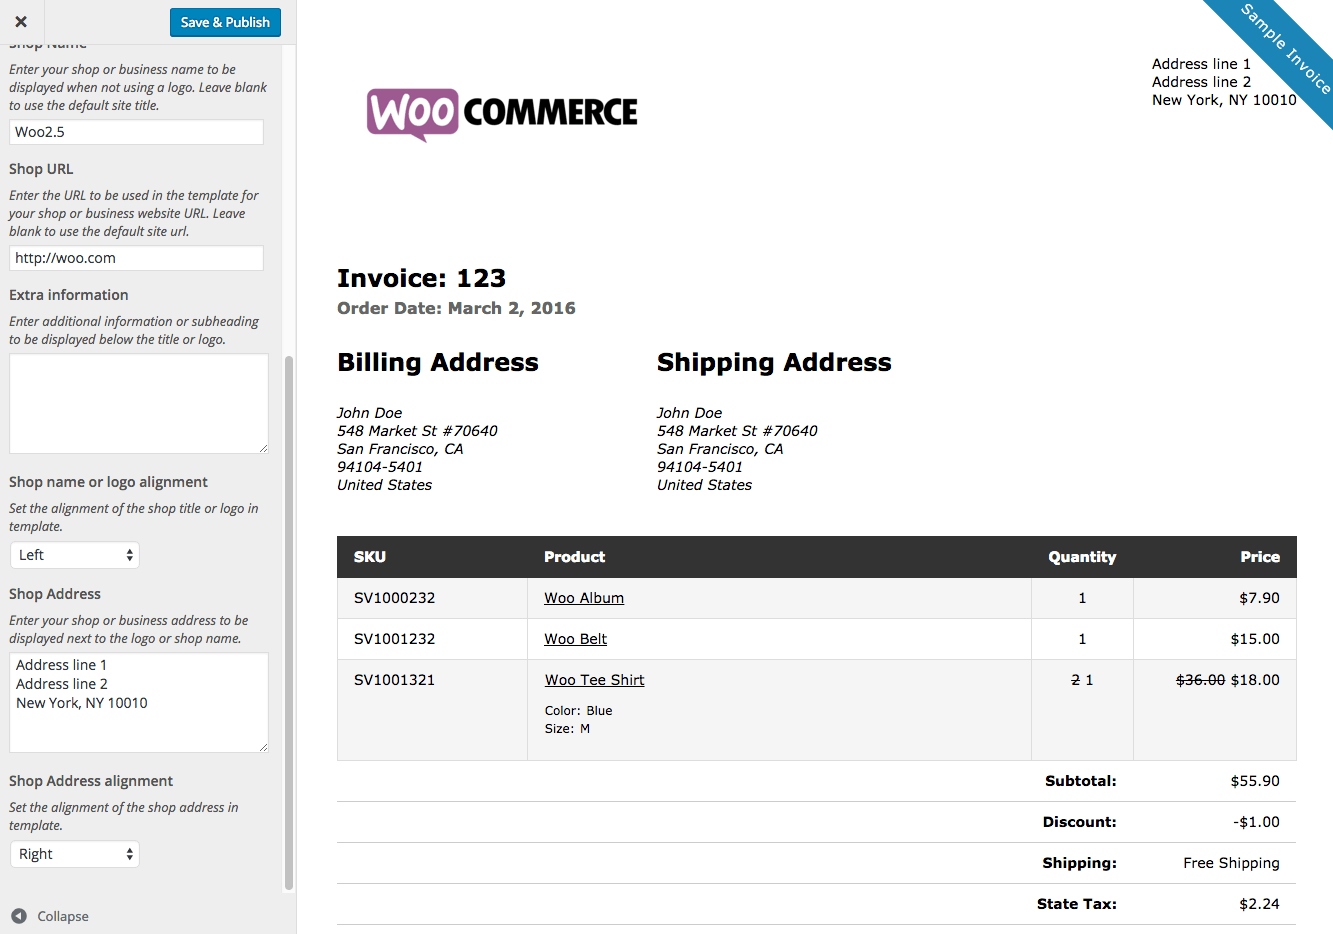 Aldiablosus  Stunning Woocommerce Print Invoices Amp Packing Lists  Woocommerce Docs With Magnificent Woocommerce Print Invoices  Packing Lists Customizer With Astounding How To Do Invoice Also Google Docs Template Invoice In Addition  Toyota Highlander Invoice Price And Pre Printed Invoices As Well As Rent Invoice Sample Additionally Invoice Freelance From Docswoocommercecom With Aldiablosus  Magnificent Woocommerce Print Invoices Amp Packing Lists  Woocommerce Docs With Astounding Woocommerce Print Invoices  Packing Lists Customizer And Stunning How To Do Invoice Also Google Docs Template Invoice In Addition  Toyota Highlander Invoice Price From Docswoocommercecom